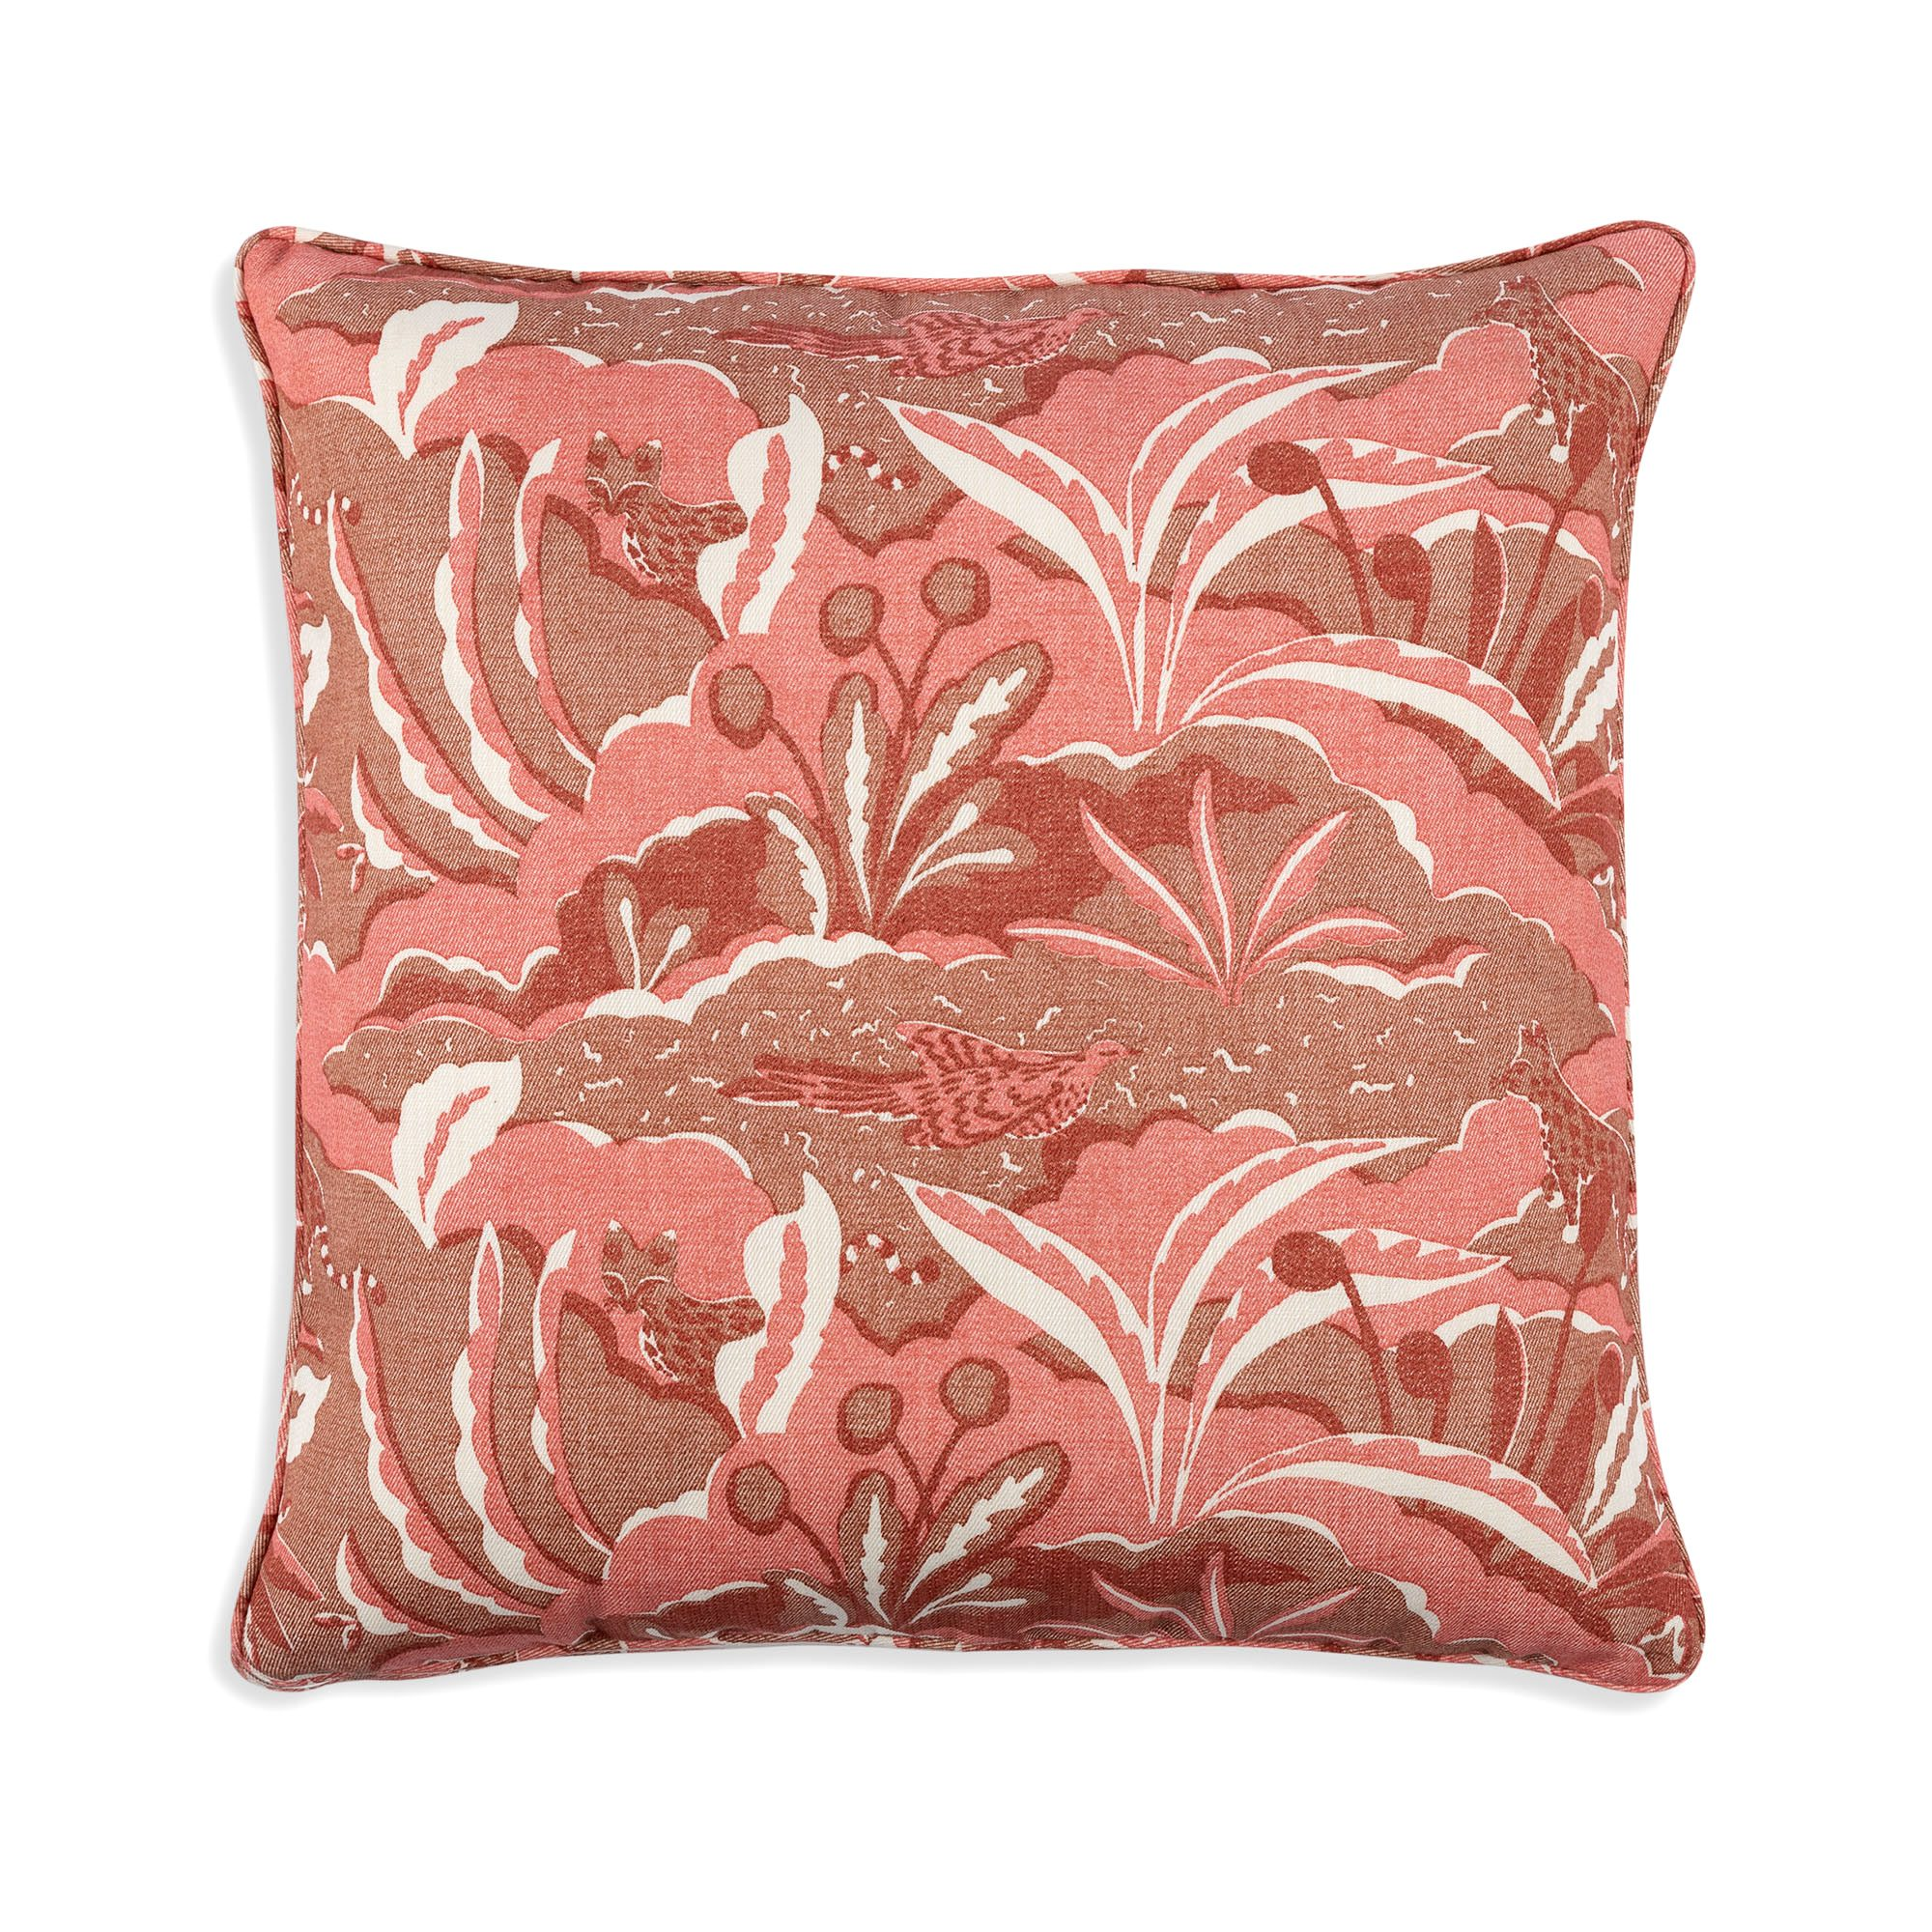 Small Square Cushion in Red Pangea